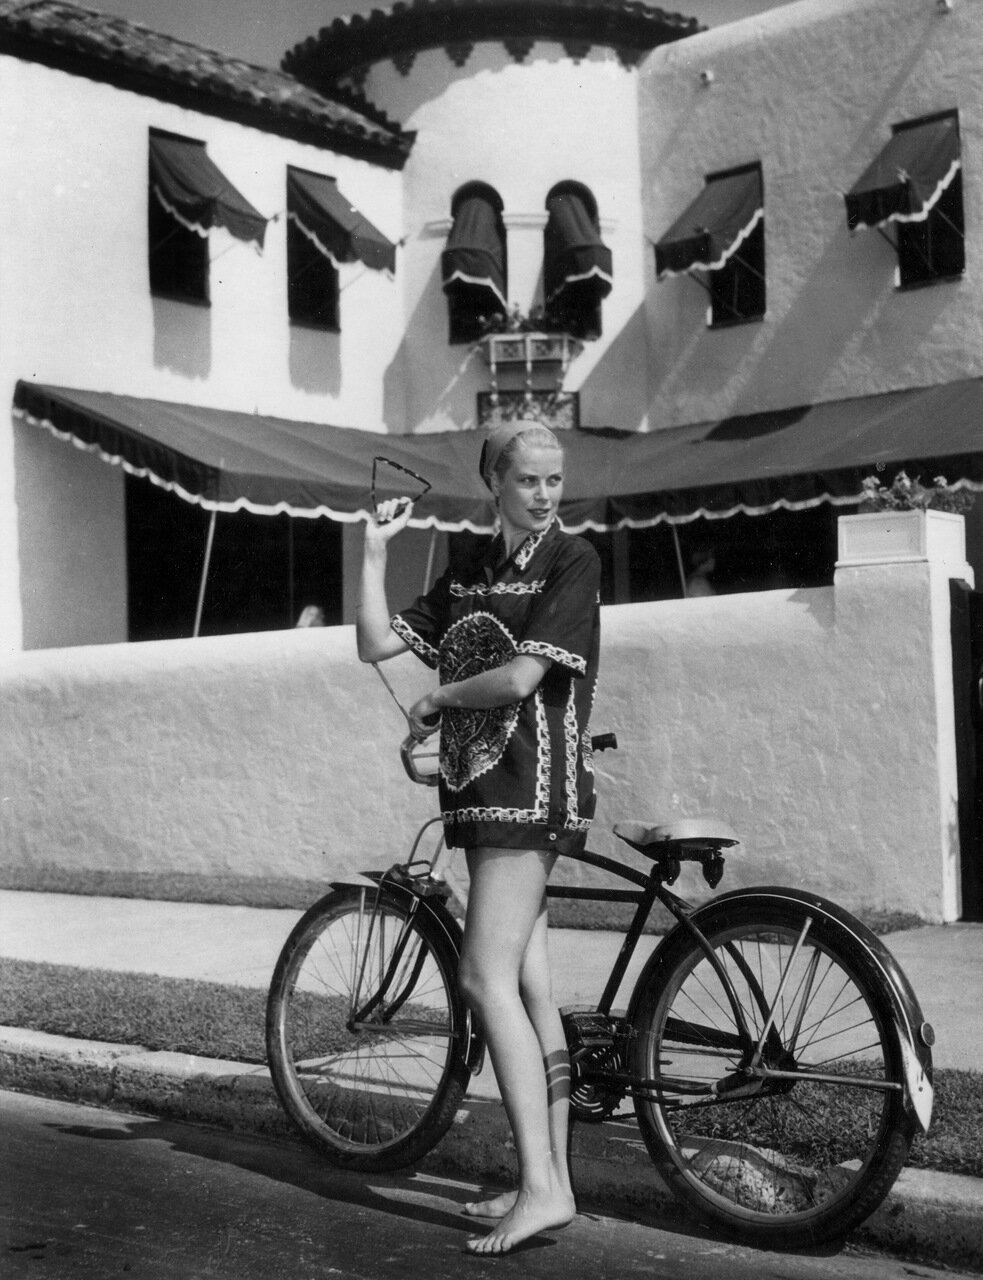 Grace Kelly pieds nus avec son velo au bord de la route a Los Angeles en 1953 -- Grace Kelly barefoot with a bike in Los Angeles in 1953